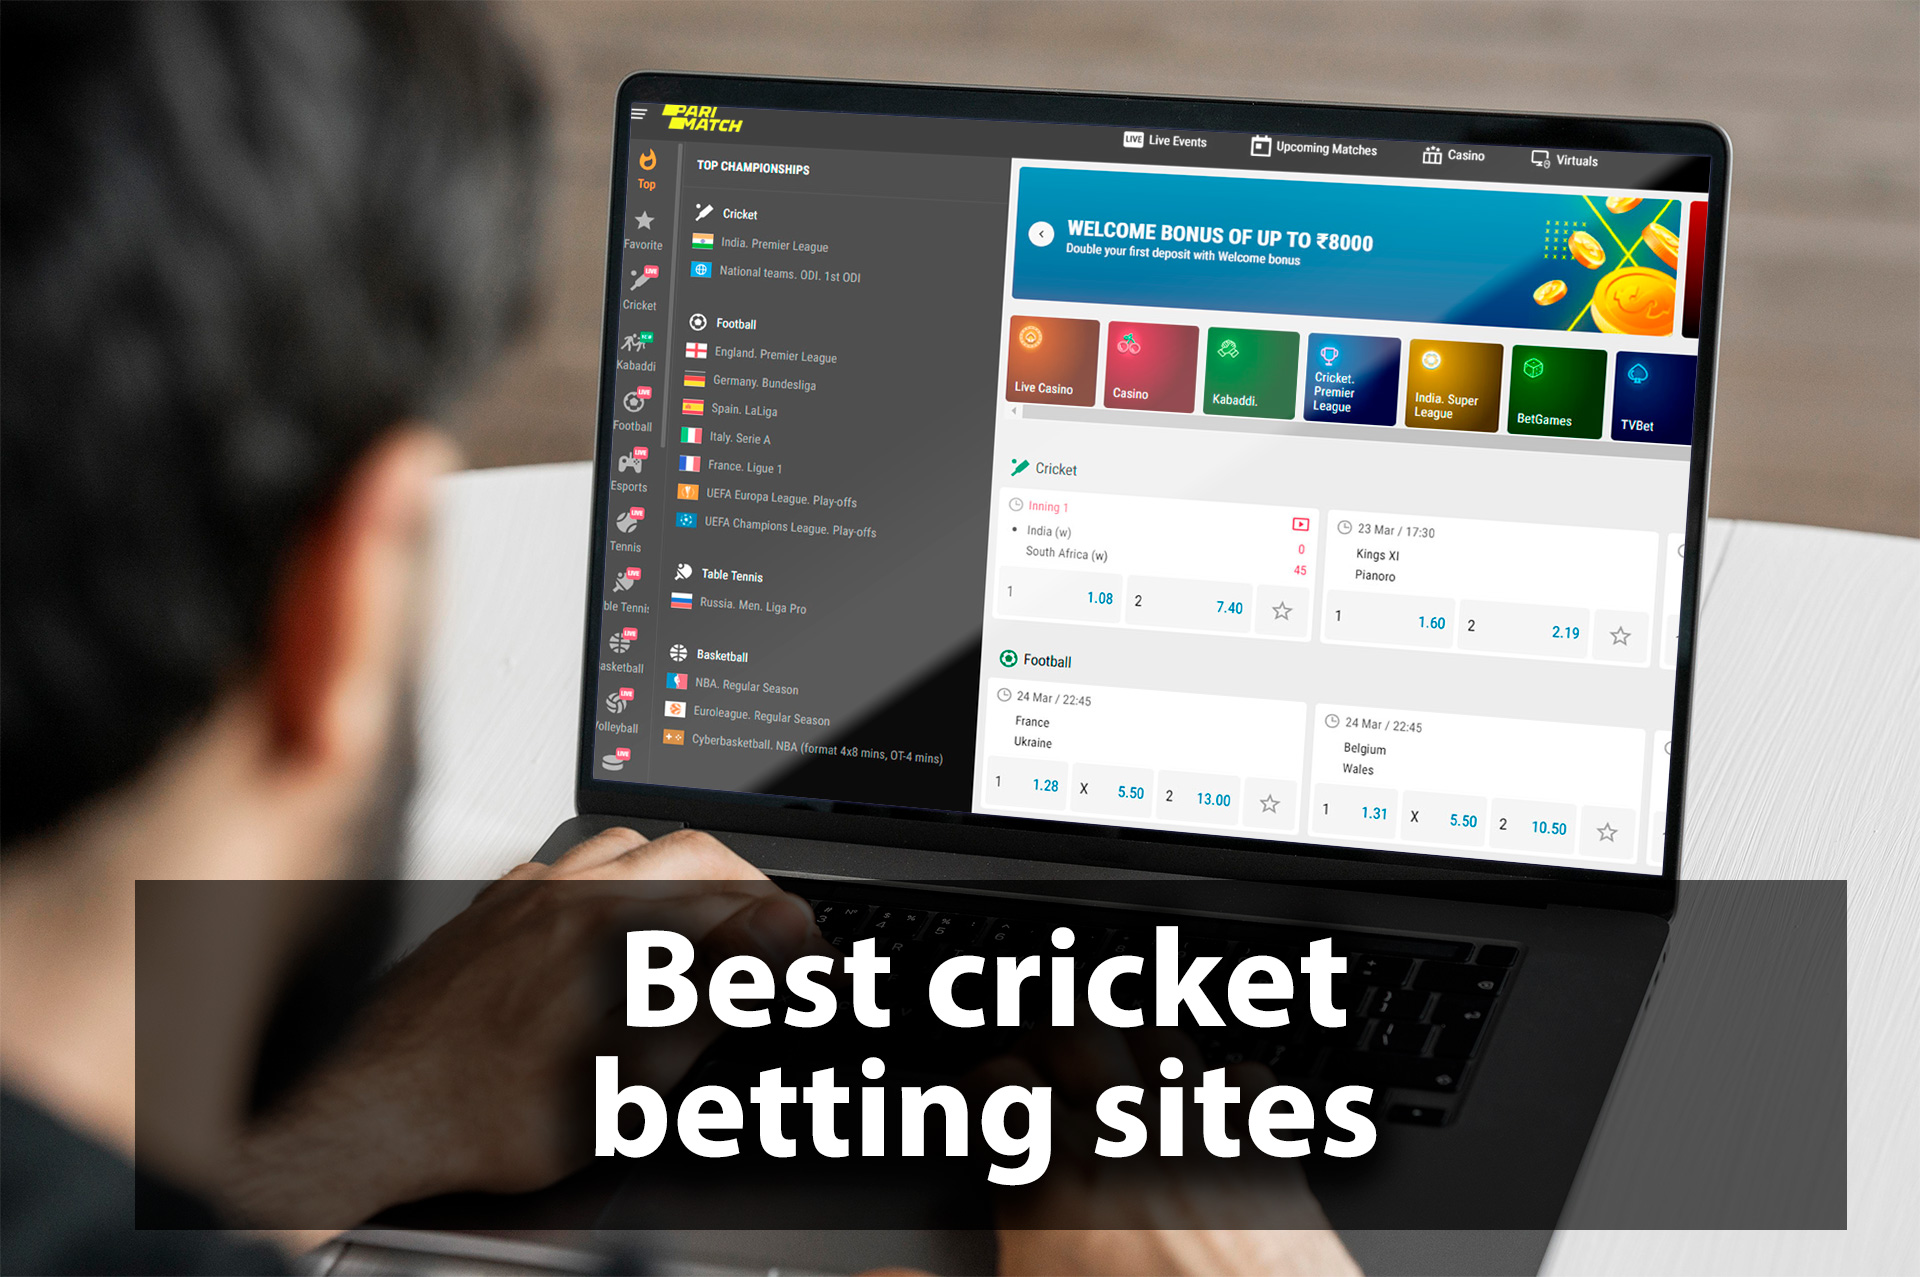 You can bet on cricket on sites from our ranking.